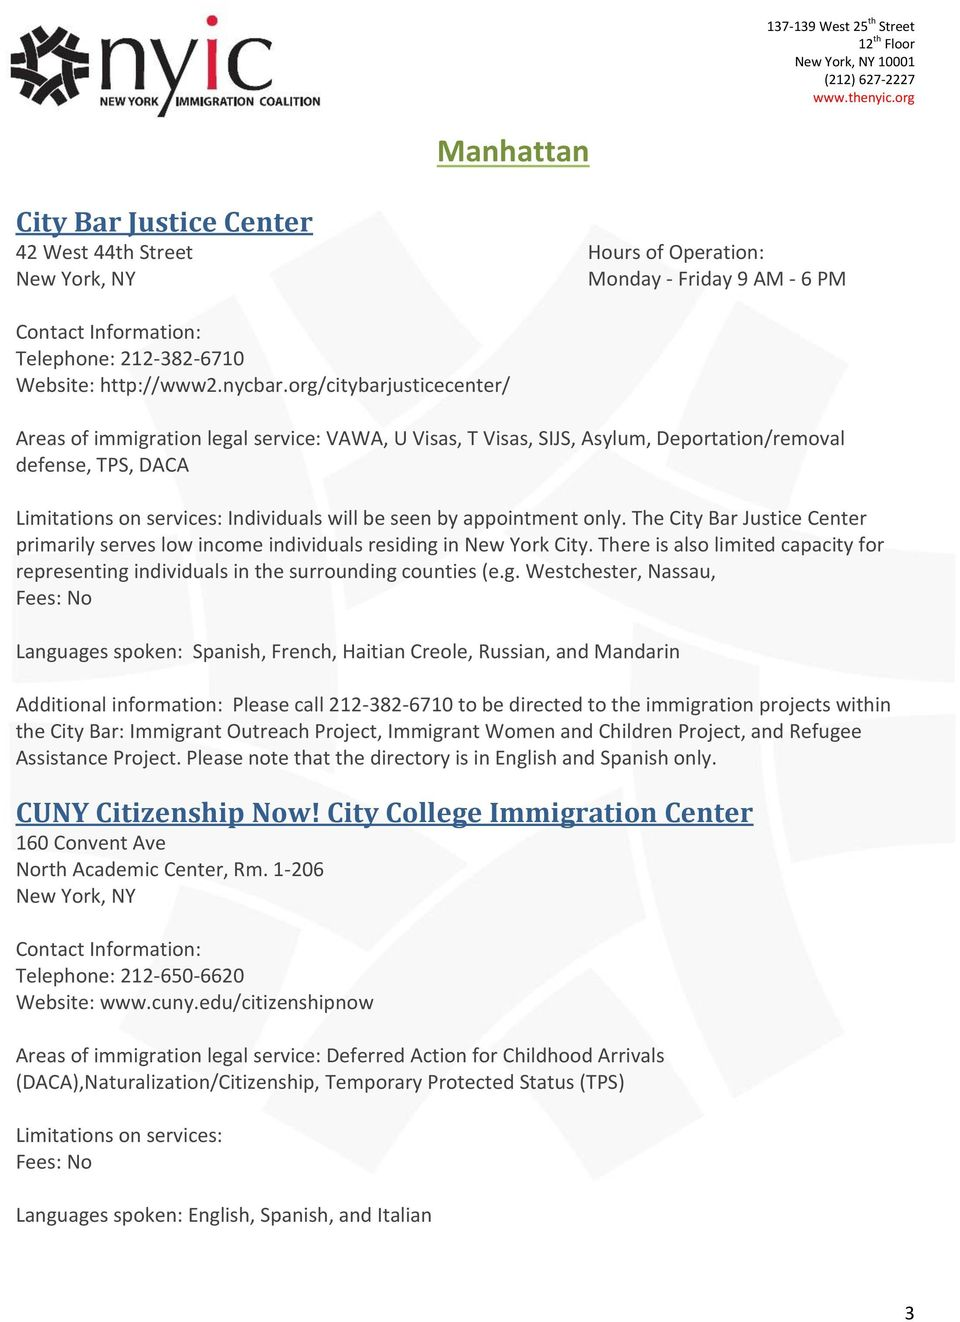 appointment only. The City Bar Justice Center primarily serves low income individuals residing in New York City.